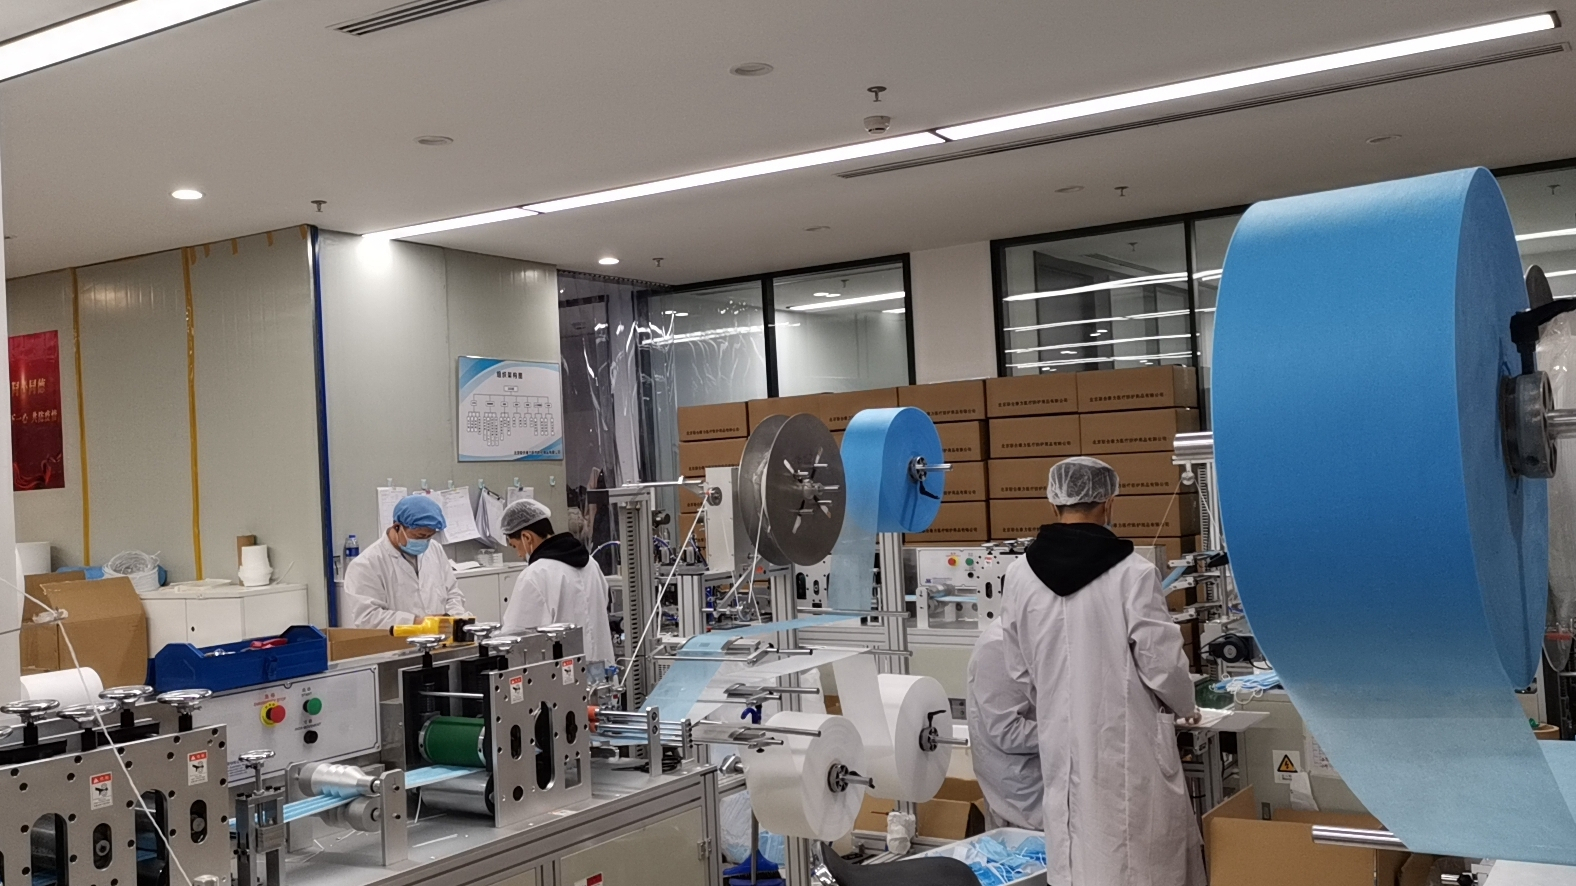 Live: A closer look at a face mask factory in Beijing - CGTN